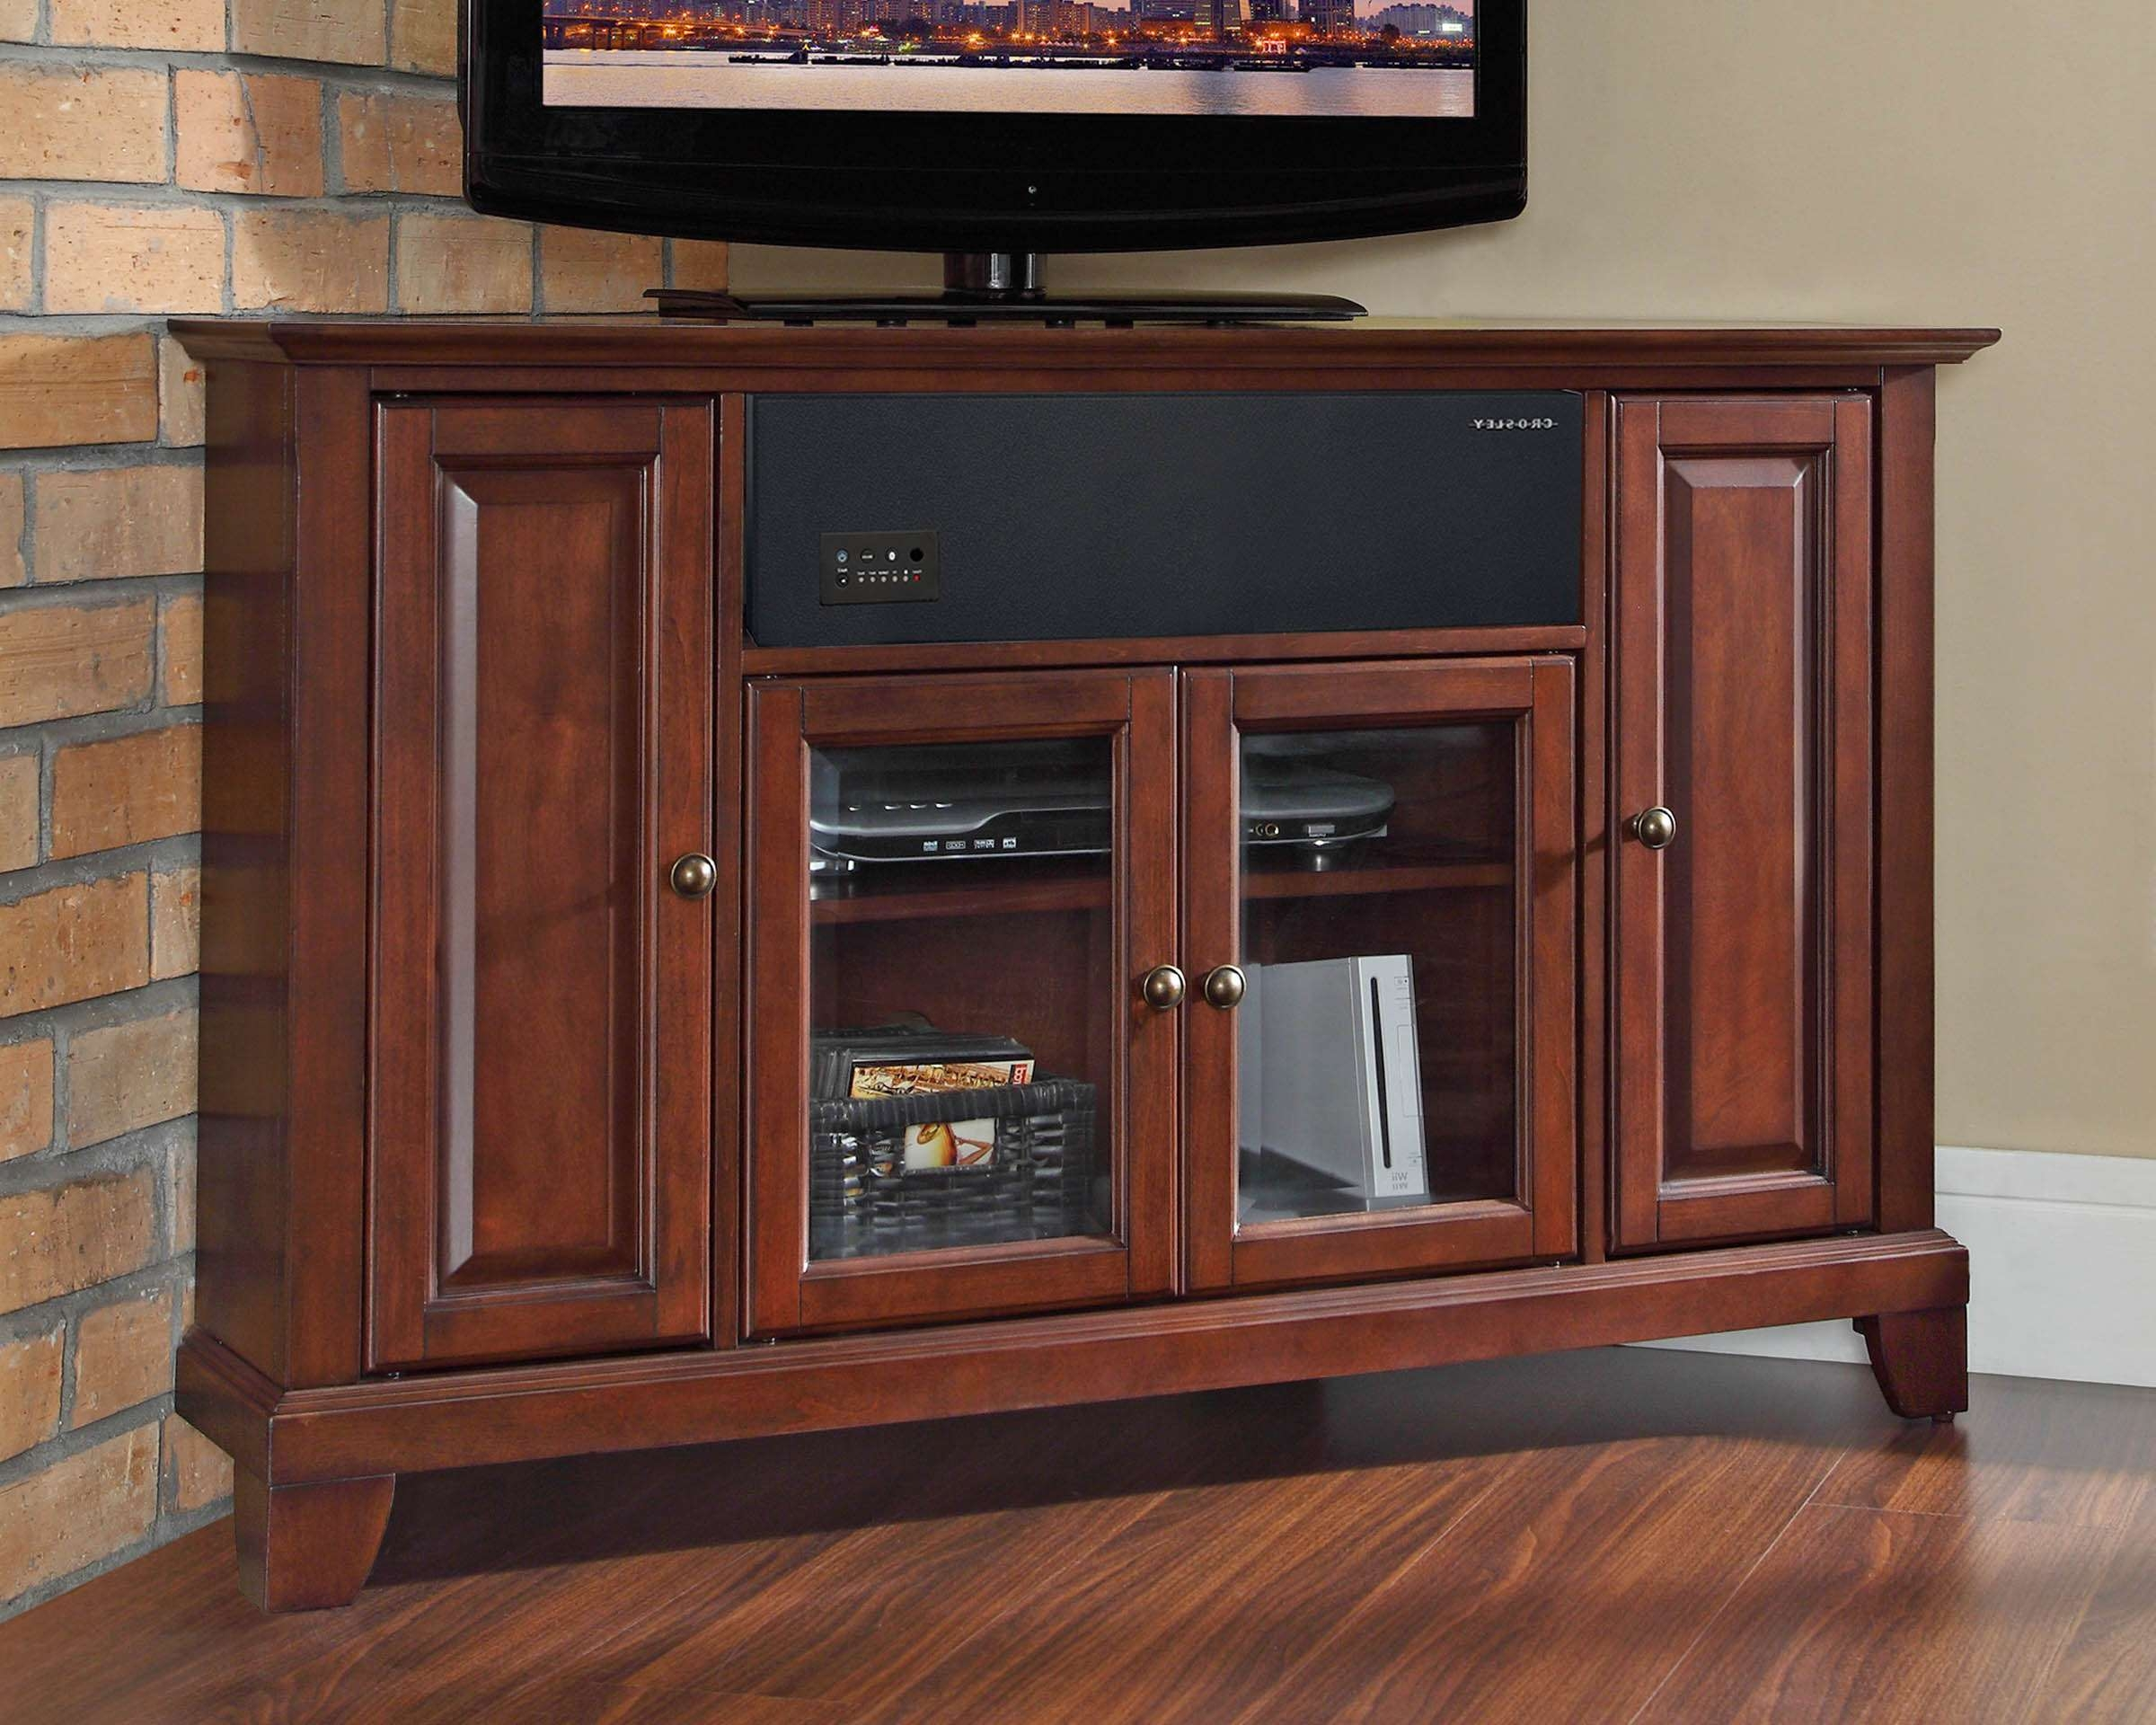 Crosley Furniture Newport 48 Inch Corner Aroundsound Tv Stand In Intended For Mahogany Corner Tv Stands (View 8 of 15)